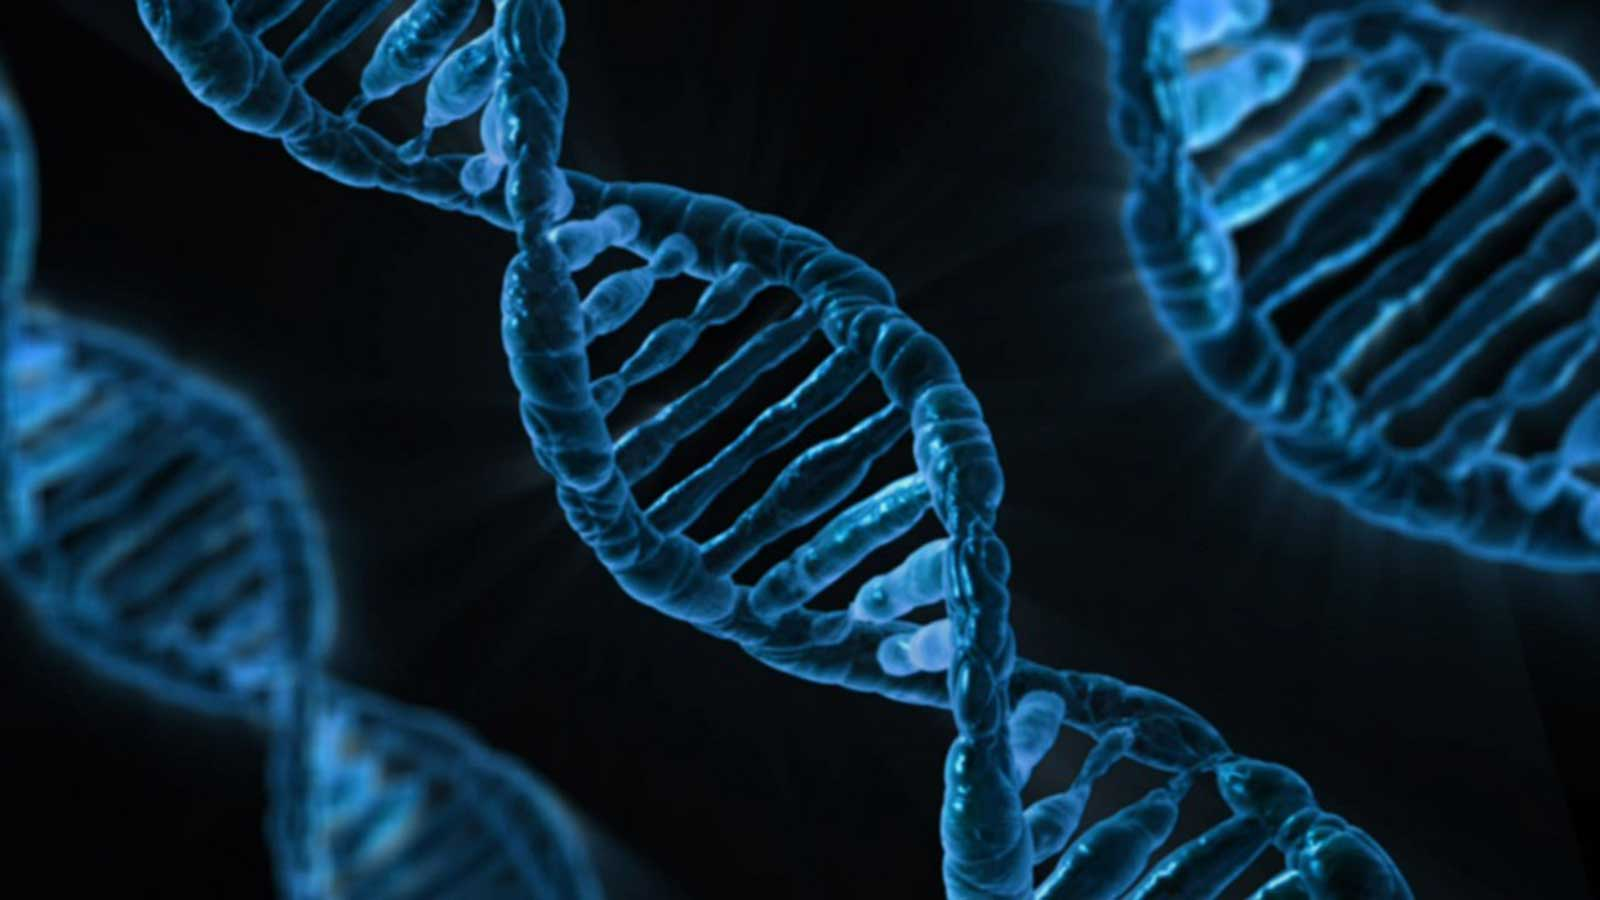 10 Examples of Genetic Engineering We Already Have